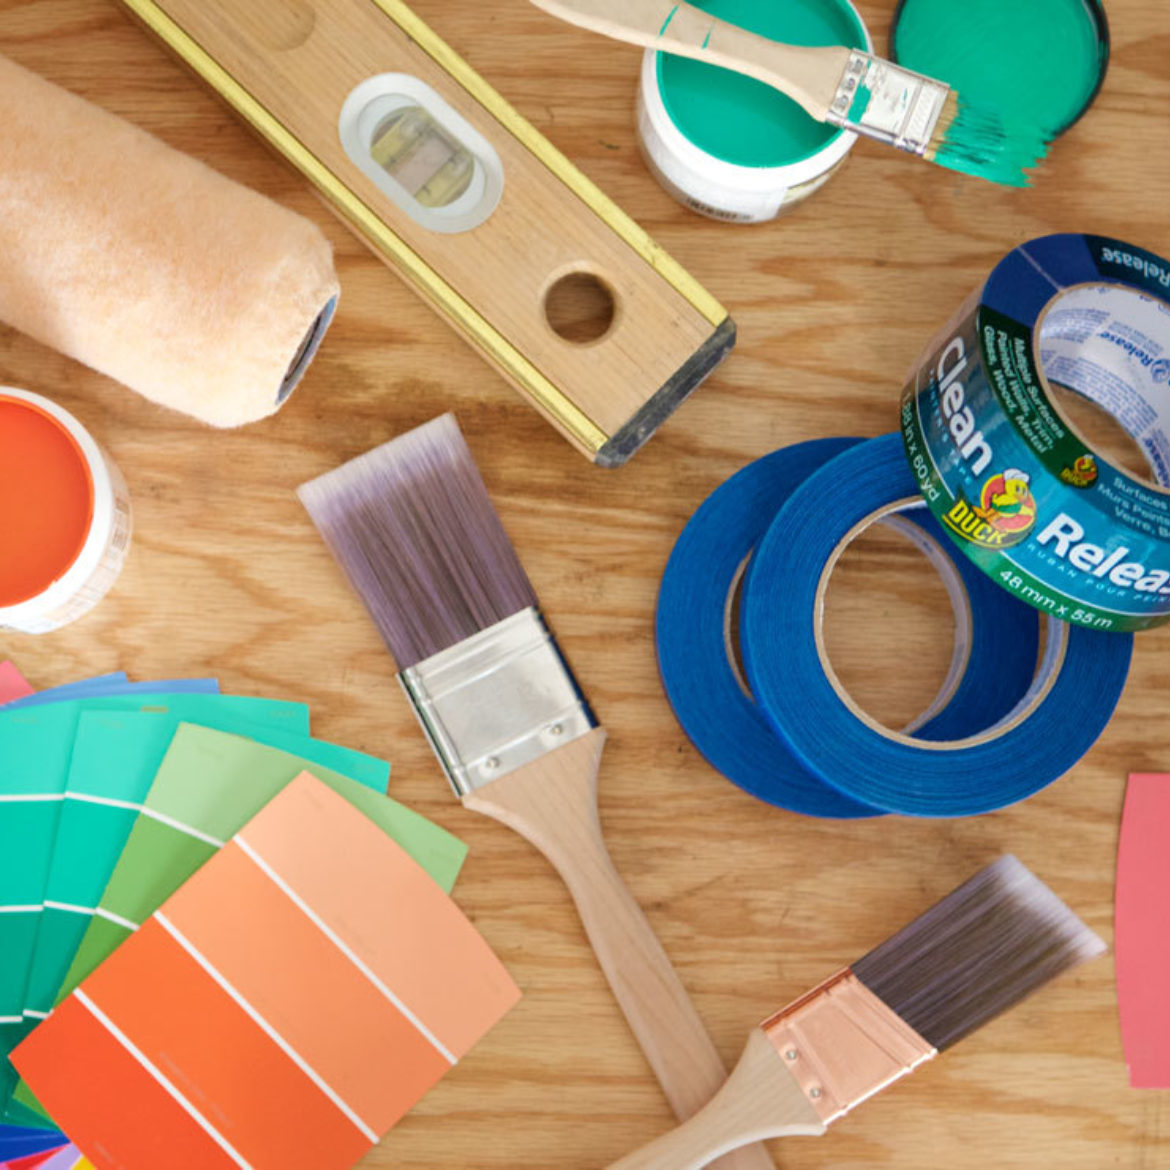 DIY for Beginners: How to Paint a Room